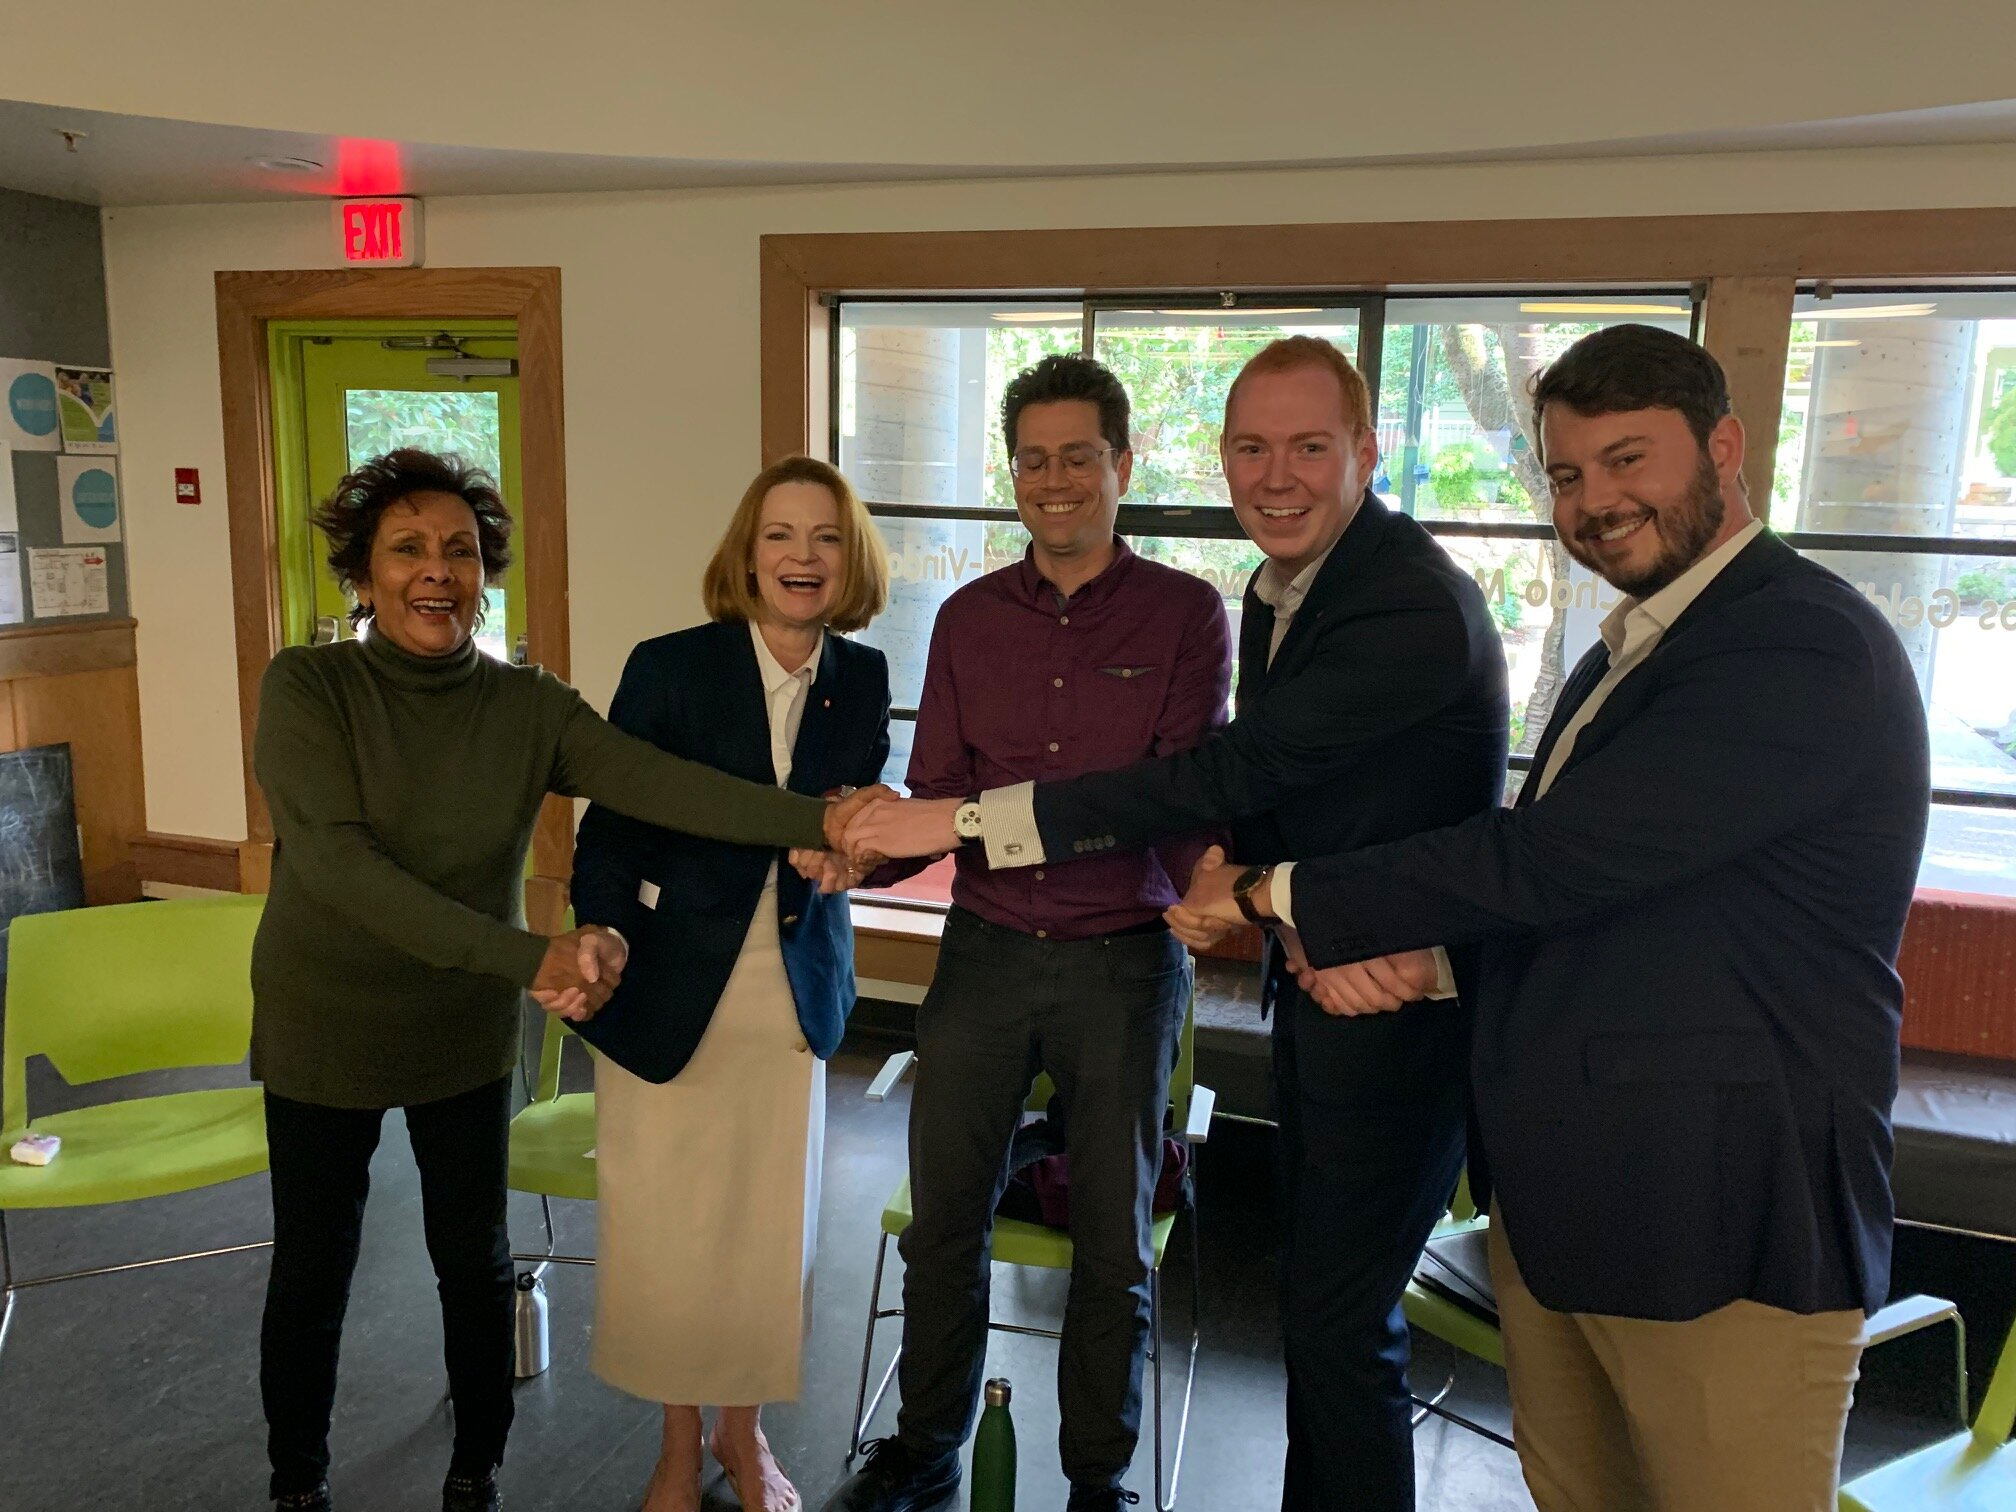 Five of the seven candidates on your ballot shared a moment of collegiality in September as guests at an meeting organized by West End Families In Action.